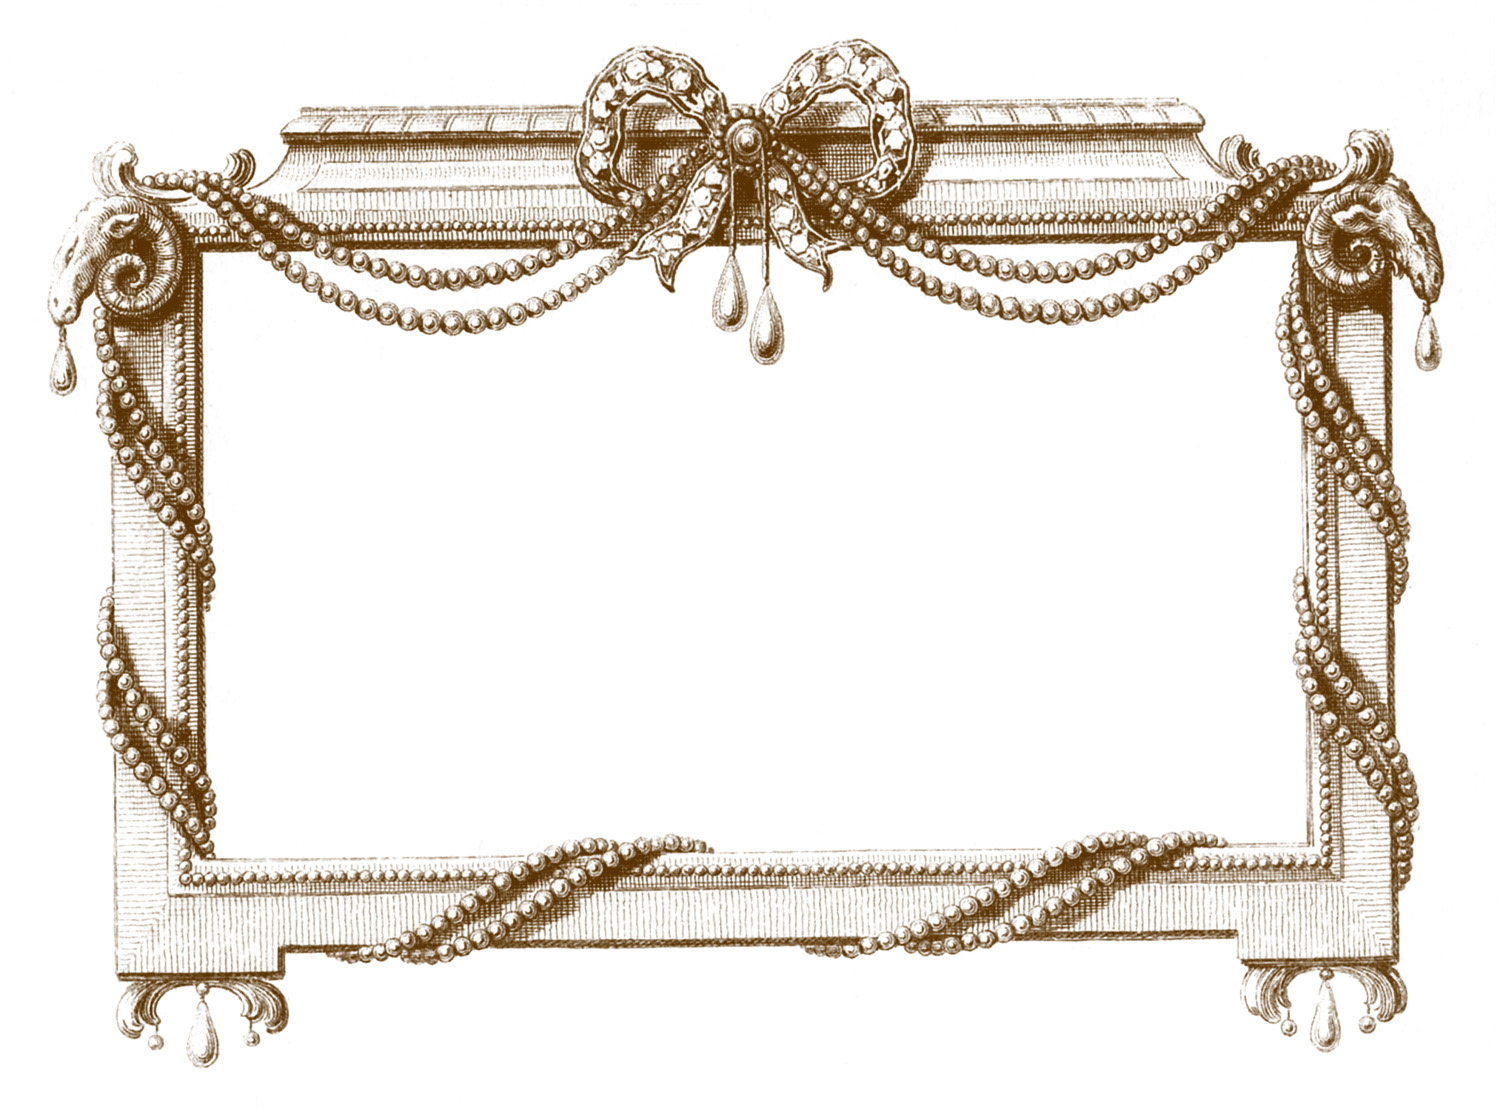 Antique Graphic Frame - Jewels and Pearls - The Graphics Fairy